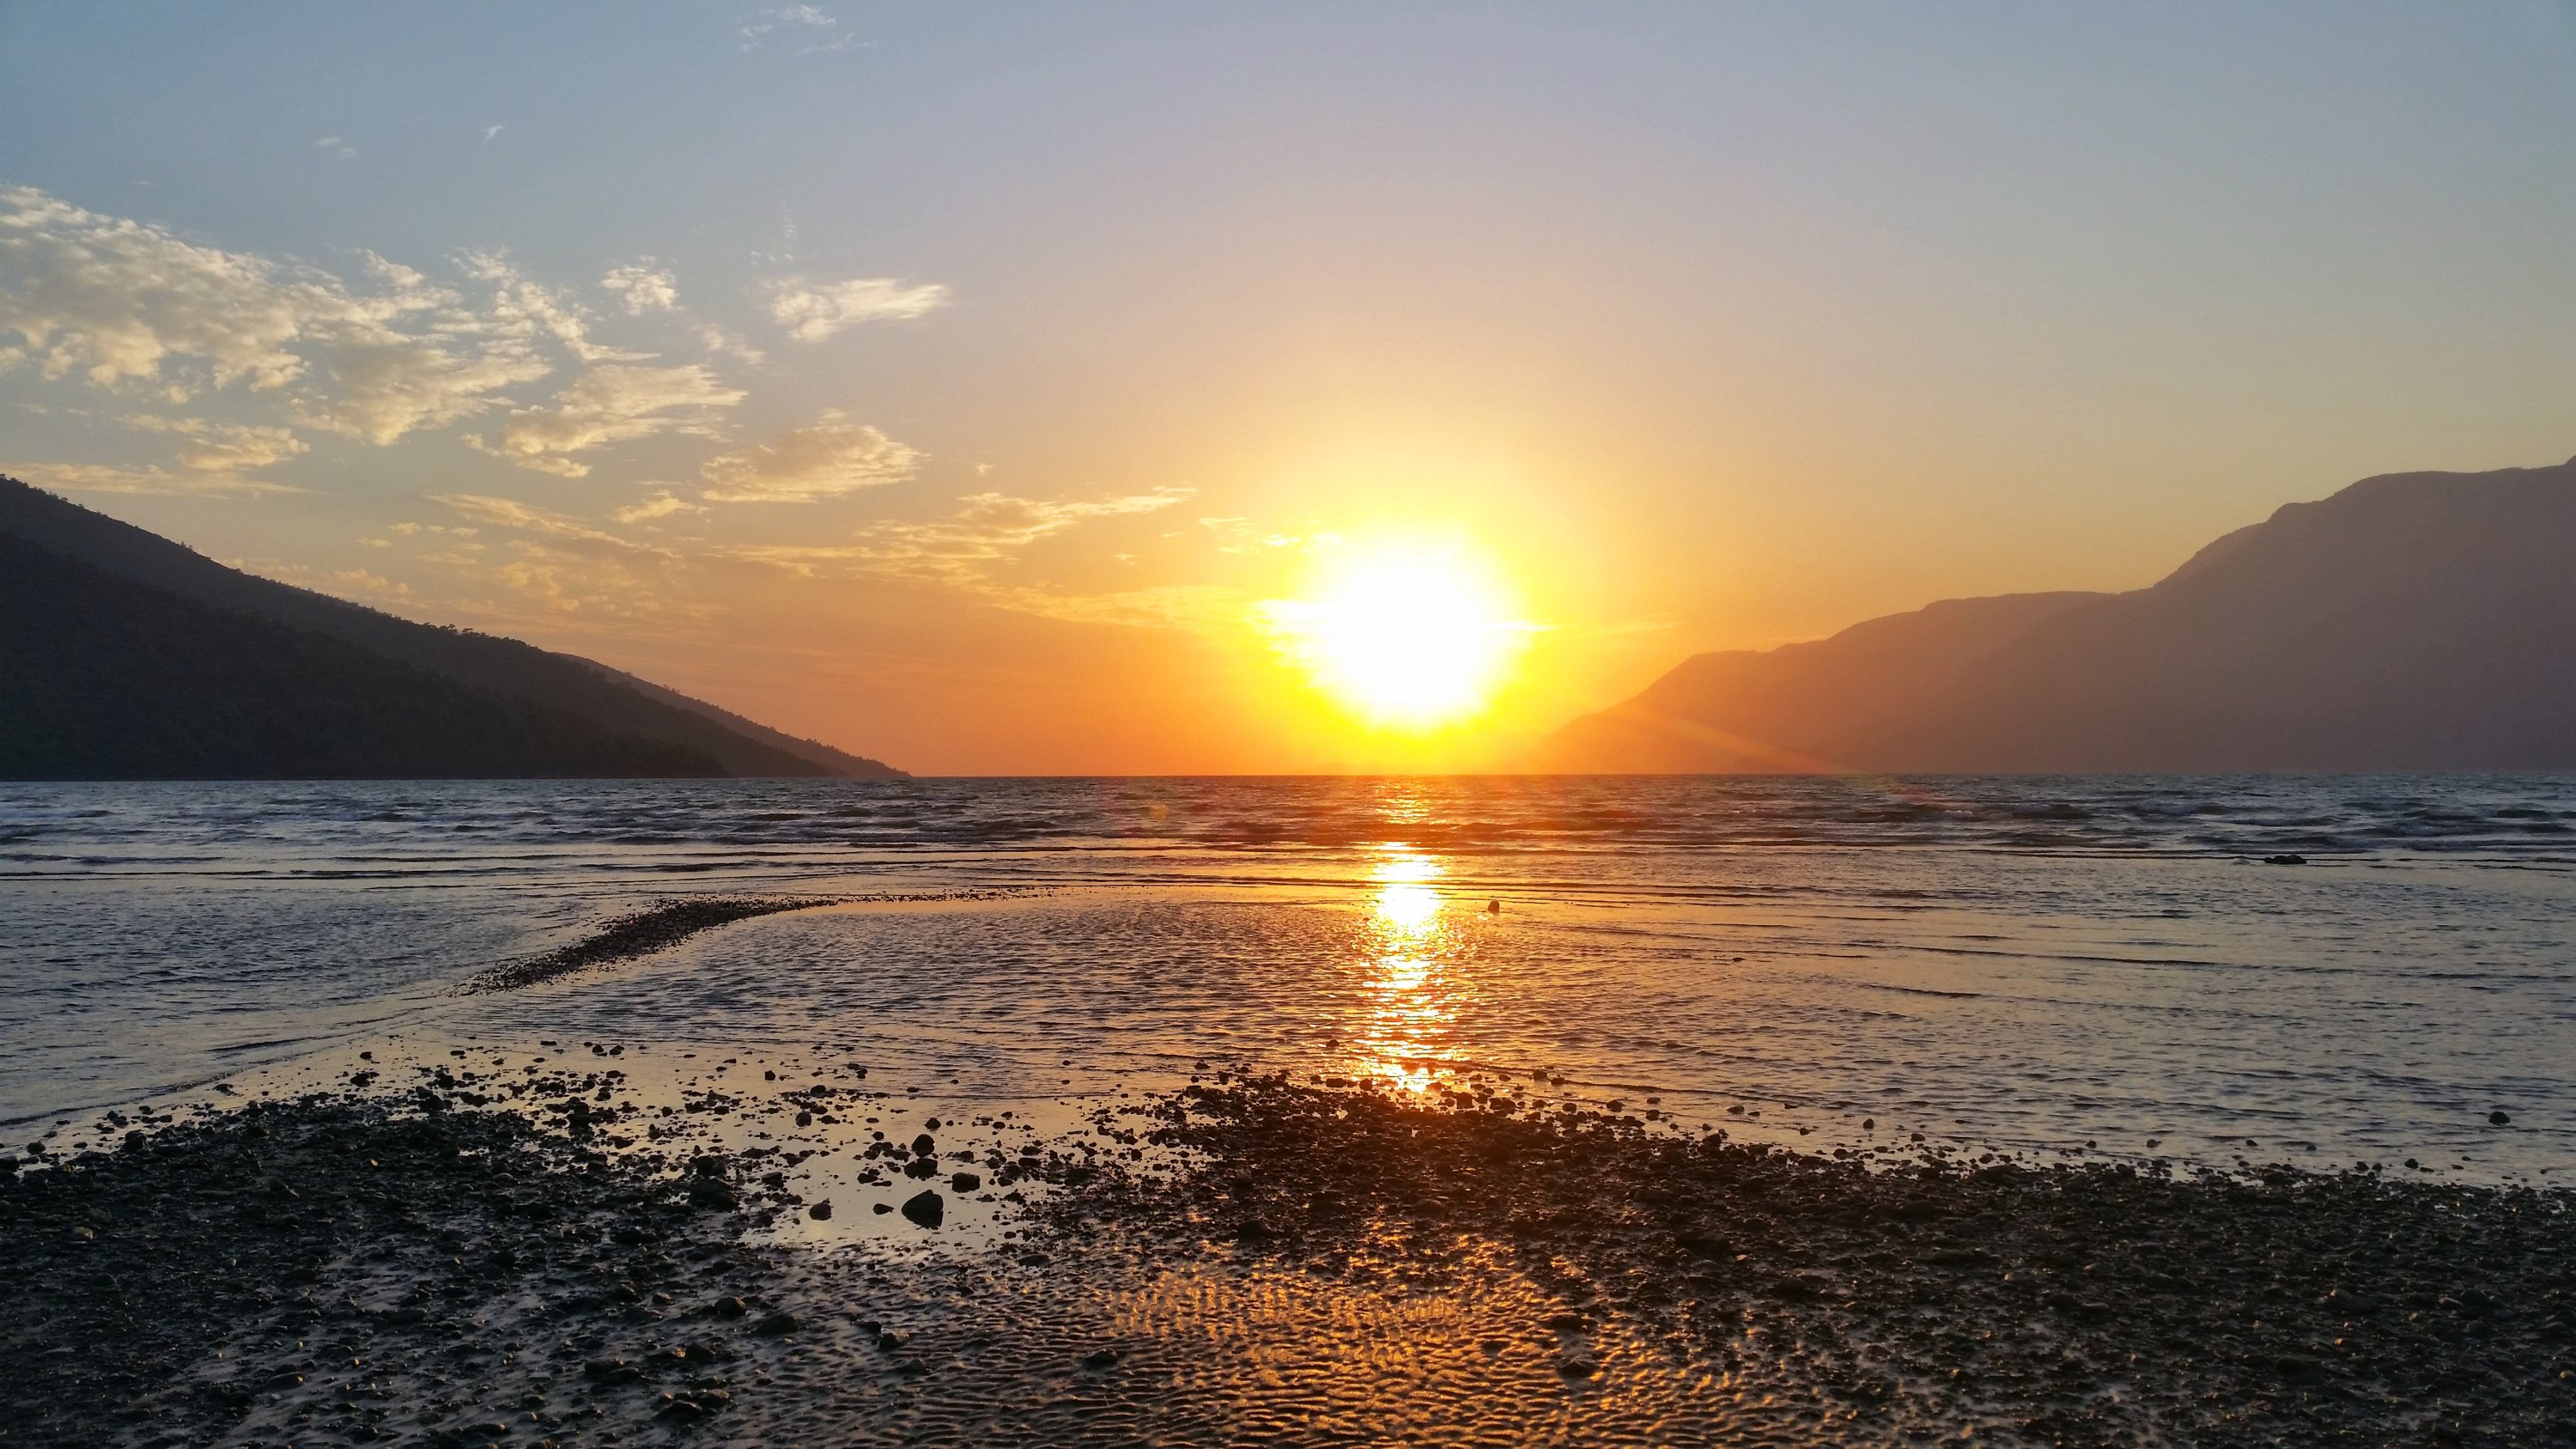 Across from a beach, the sun sets over the mountains in Akyaka, Muğla, Turkey. (Shutterstock Photo)